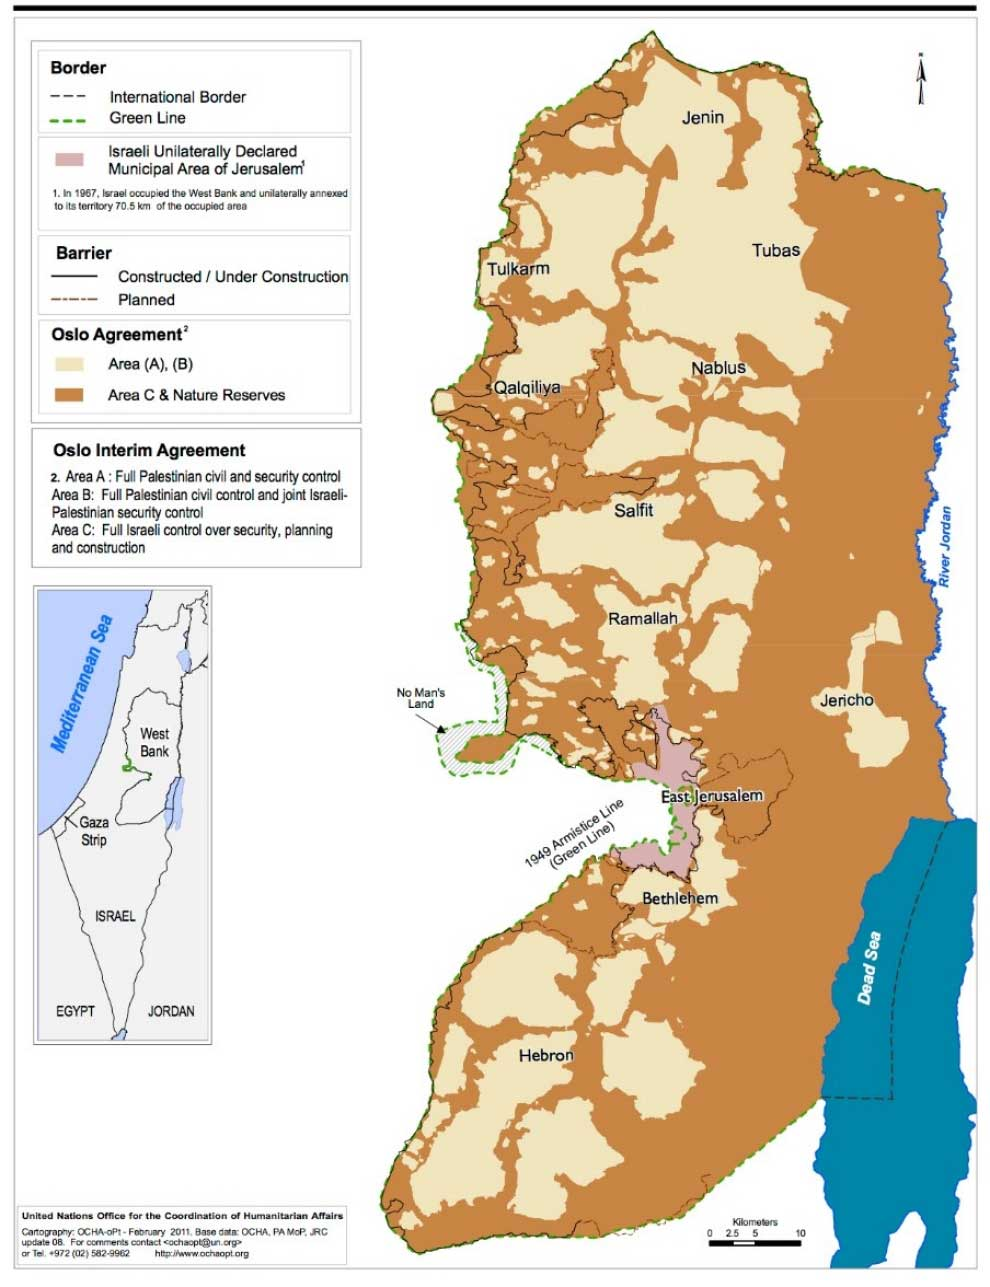 Areas A, B, & C in the West Bank. Credit: UN OCHA, February 2011